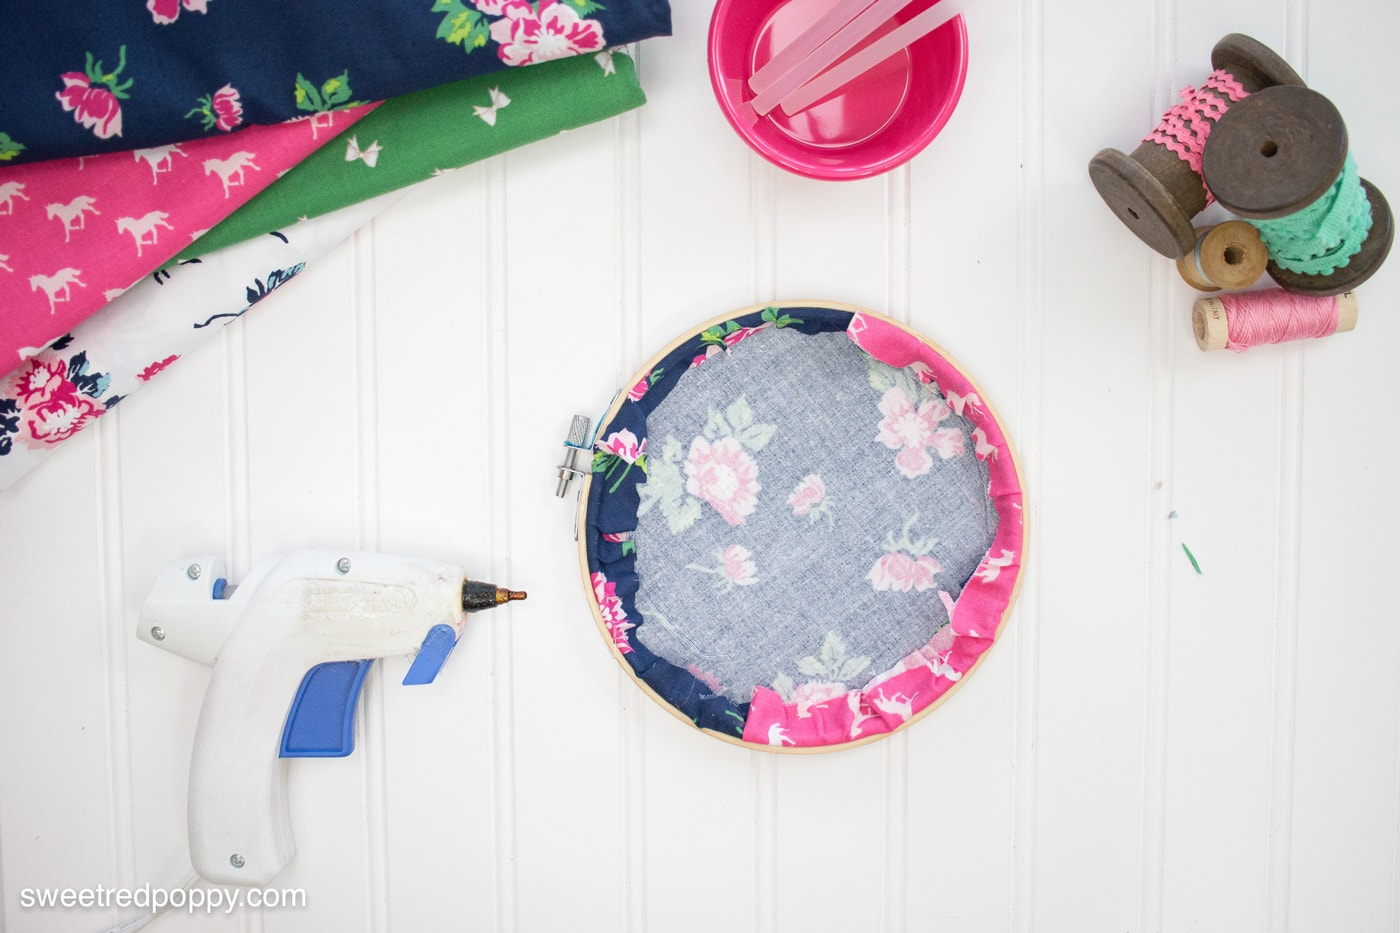 How To Make An Embroidery Pattern Diy Embroidery Hoop Hanging Wall Organizers